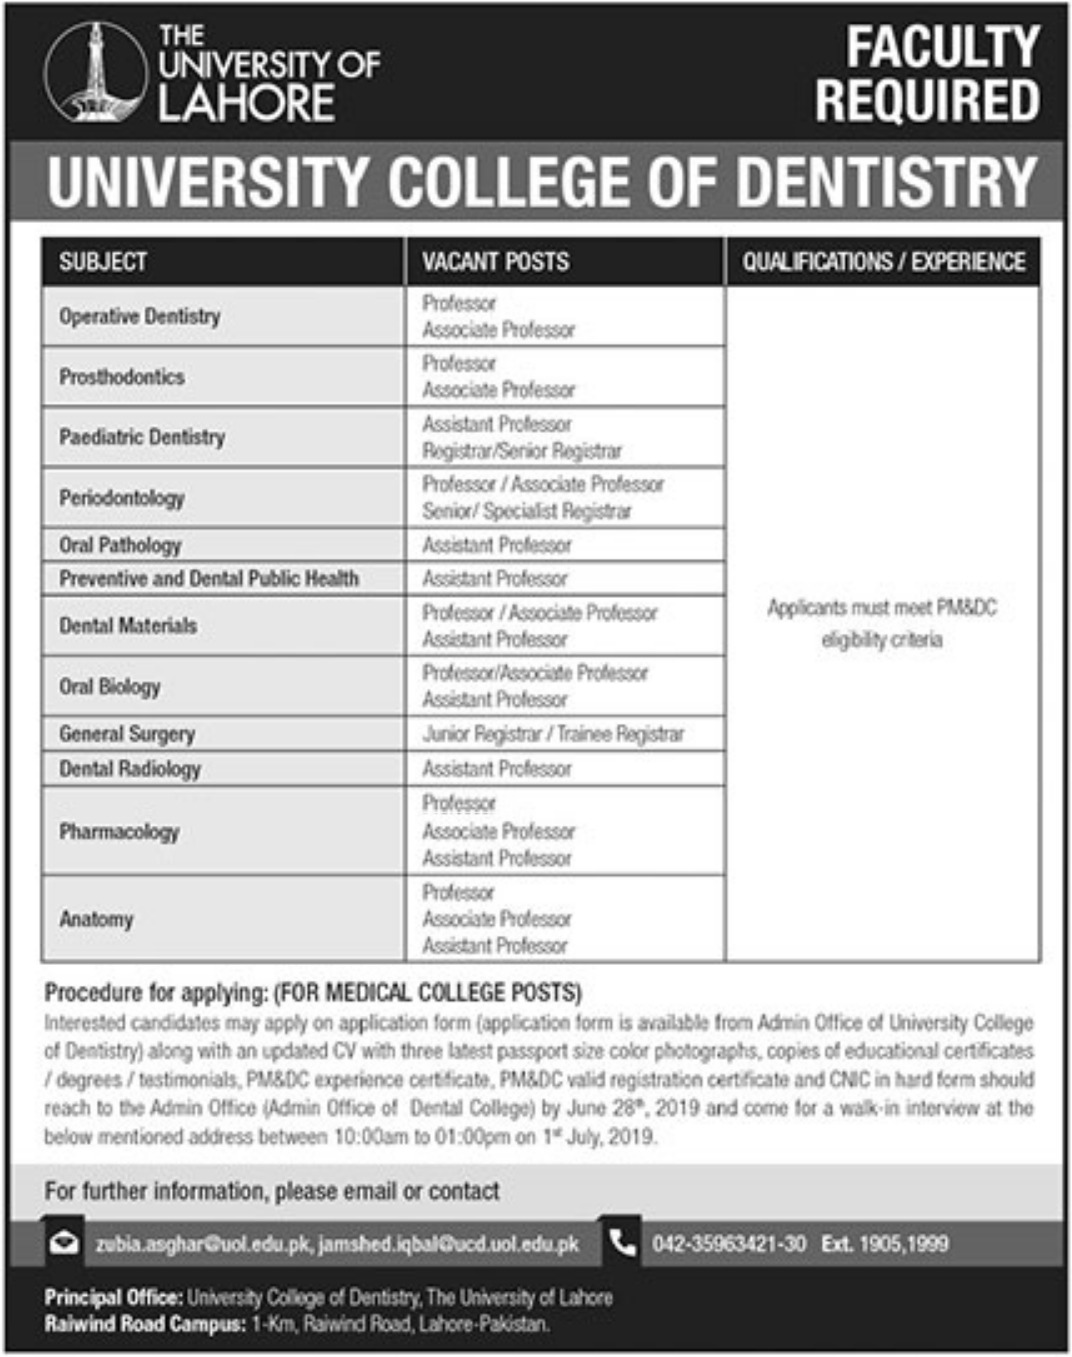 University College of Dentistry Jobs 2019 University of Lahore